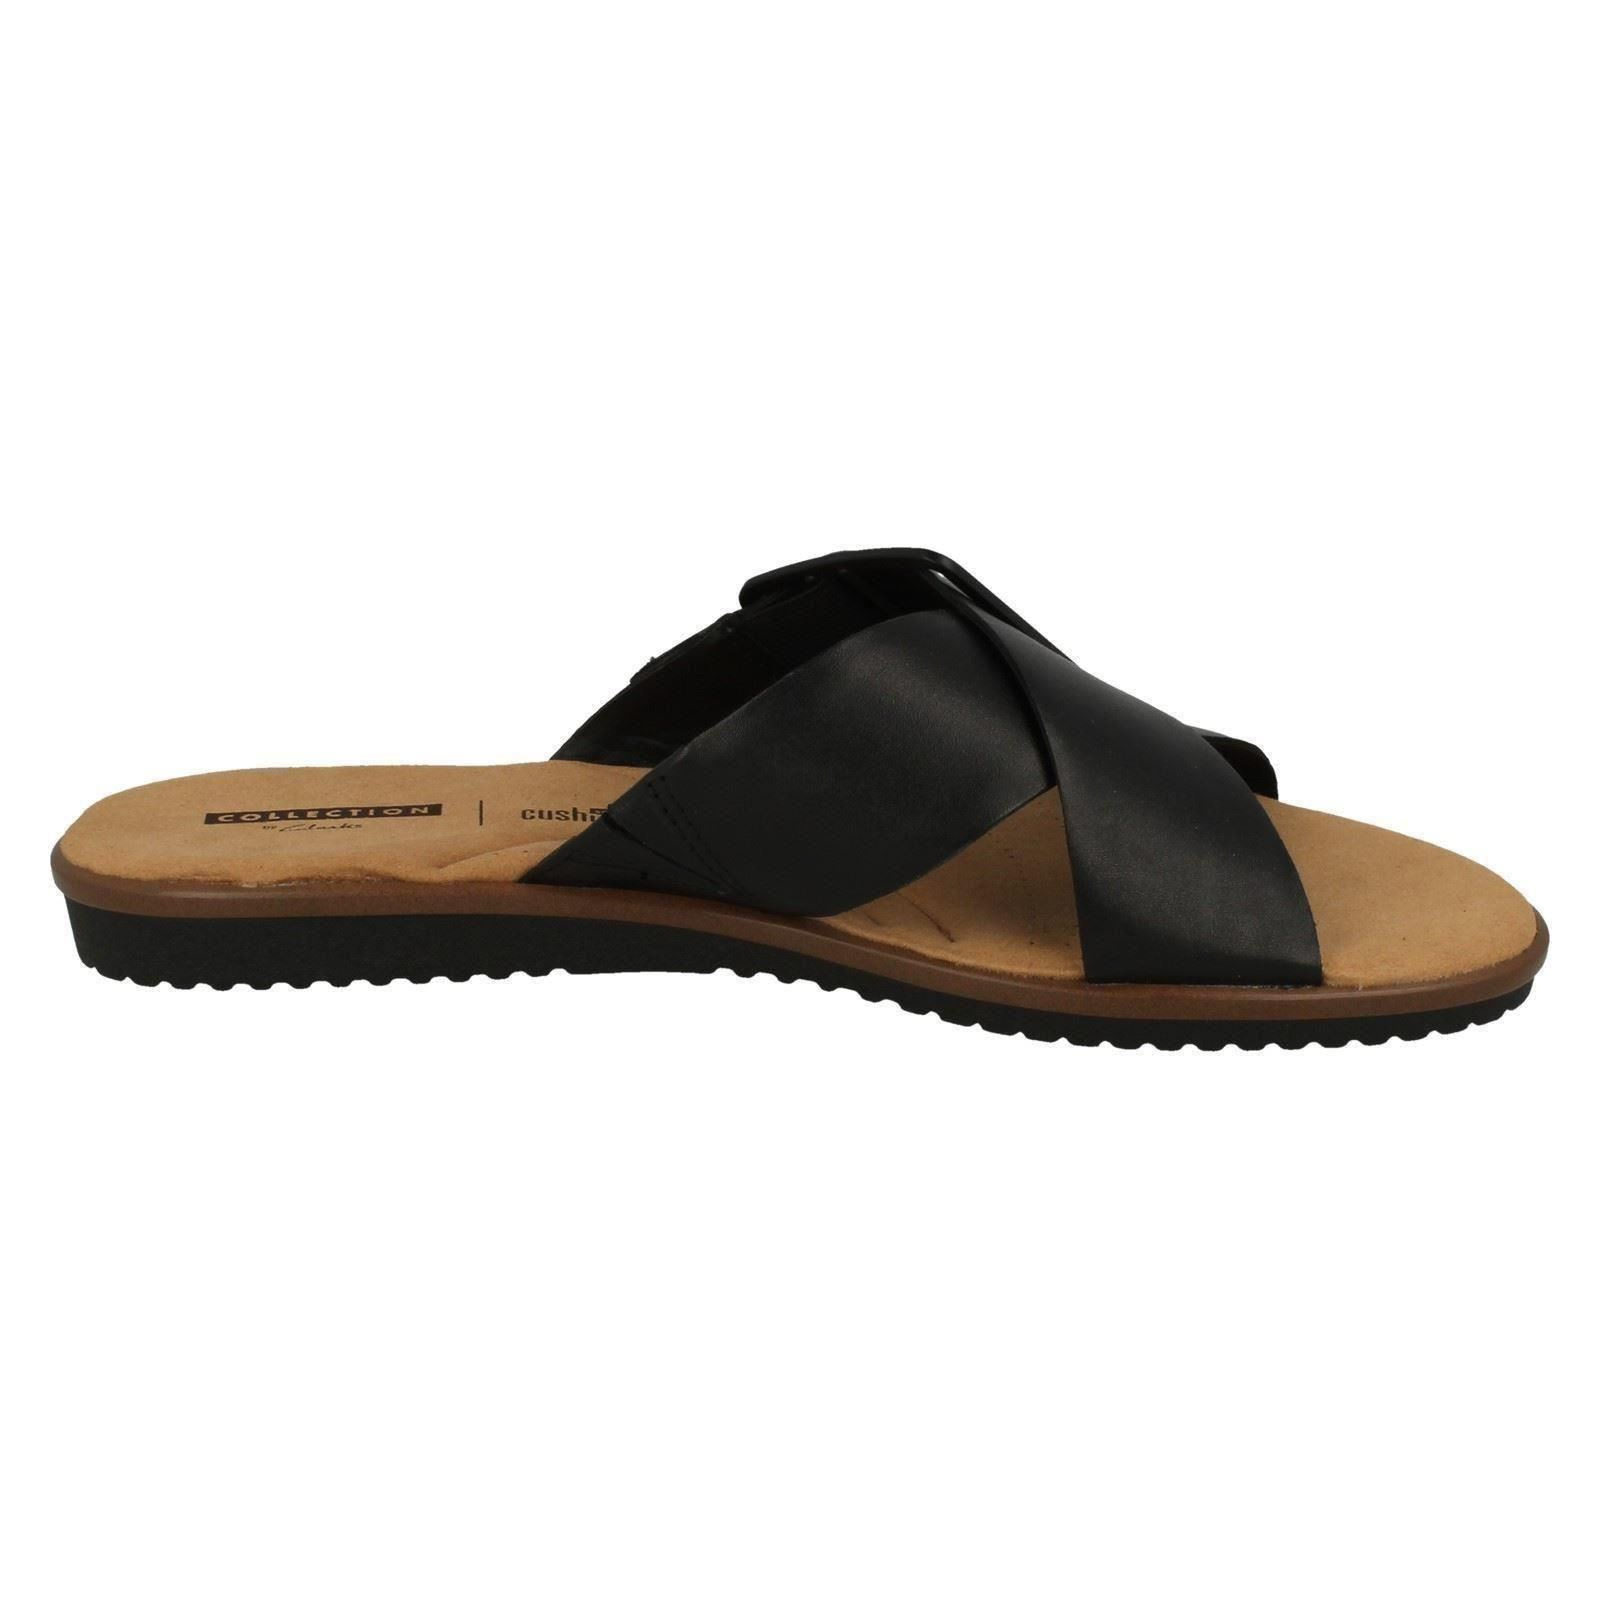 d3a1d961351 Clarks Kele Heather - Black Leather Womens Sandals 6 UK. About this  product. Picture 1 of 9  Picture 2 of 9  Picture 3 of 9 ...